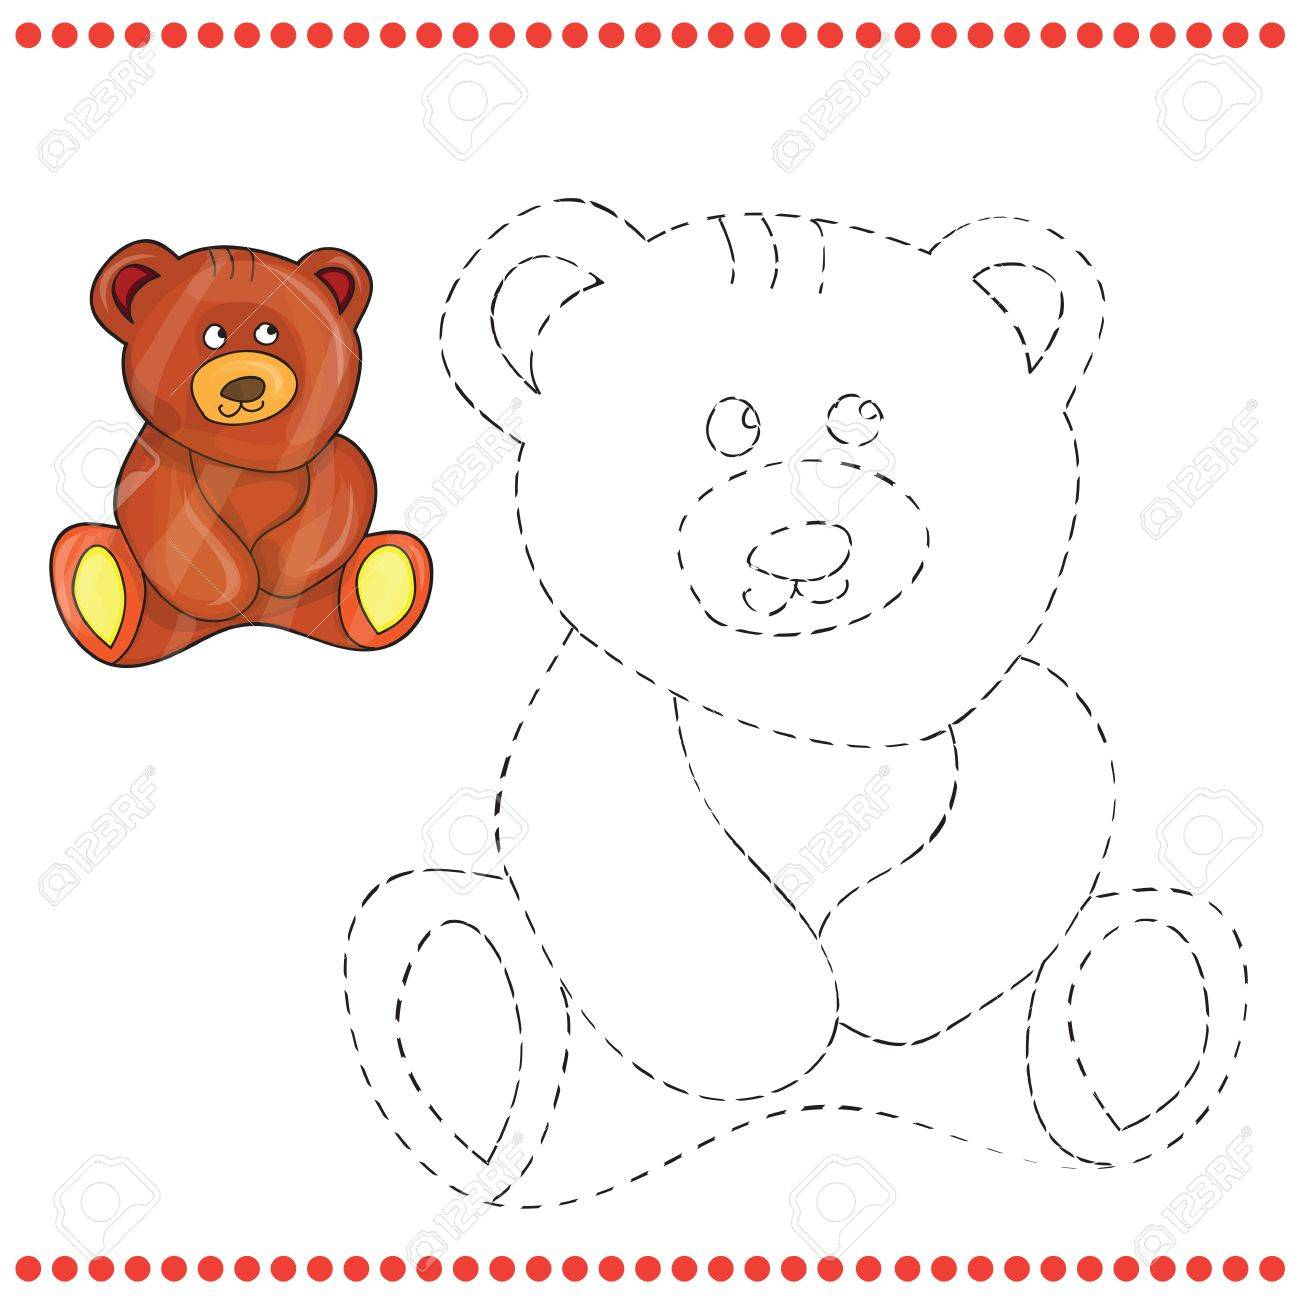 connect the dots and coloring page teddy bear royalty free